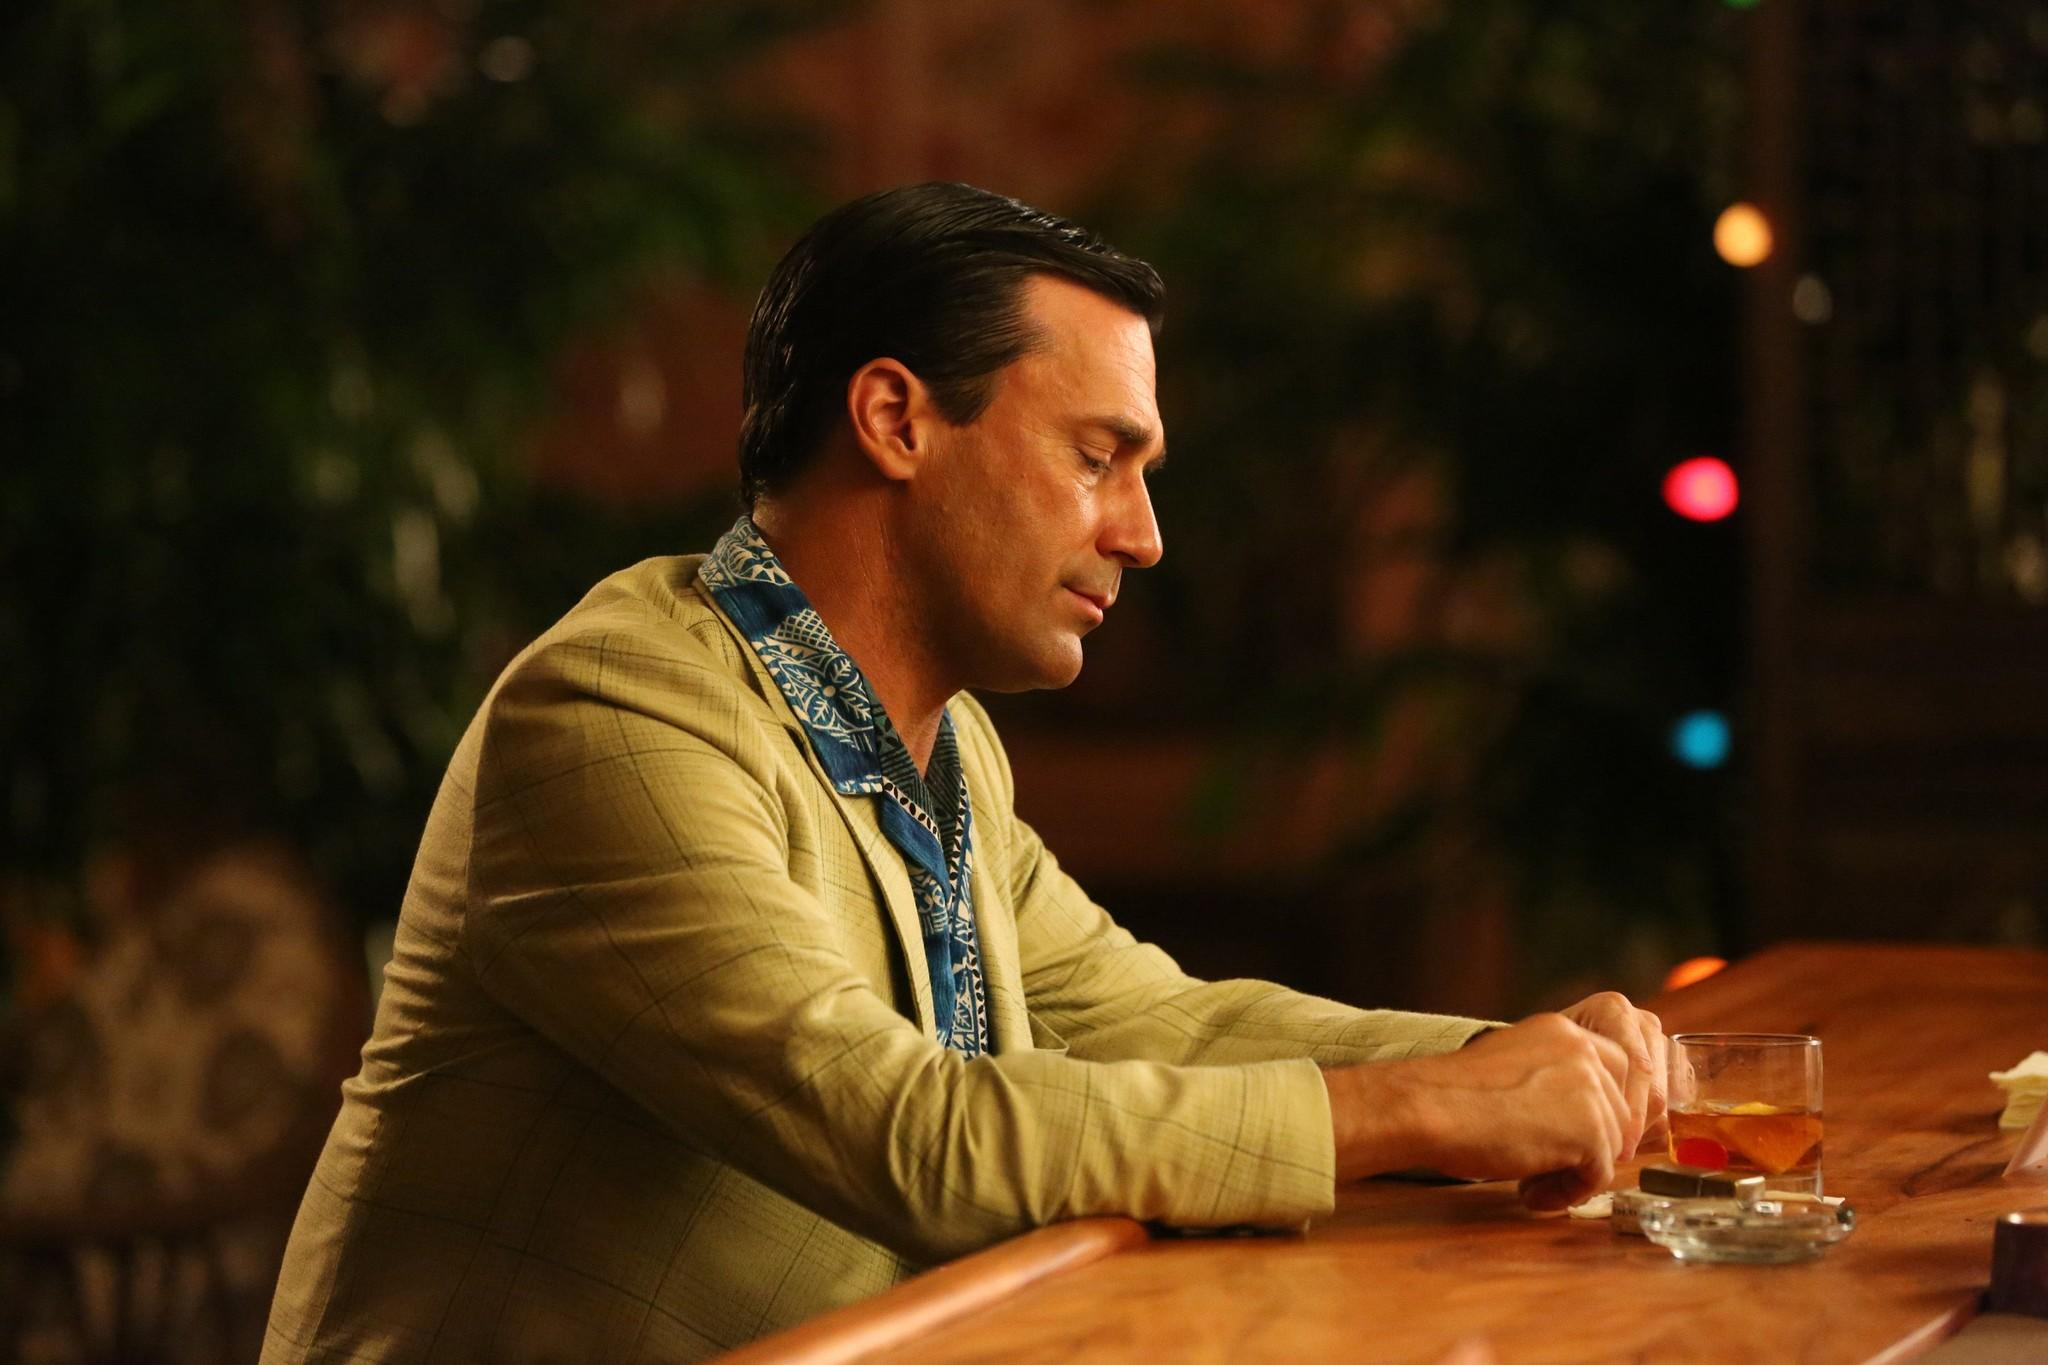 Jon Hamm as Don Draper on AMC's 'Mad Men'